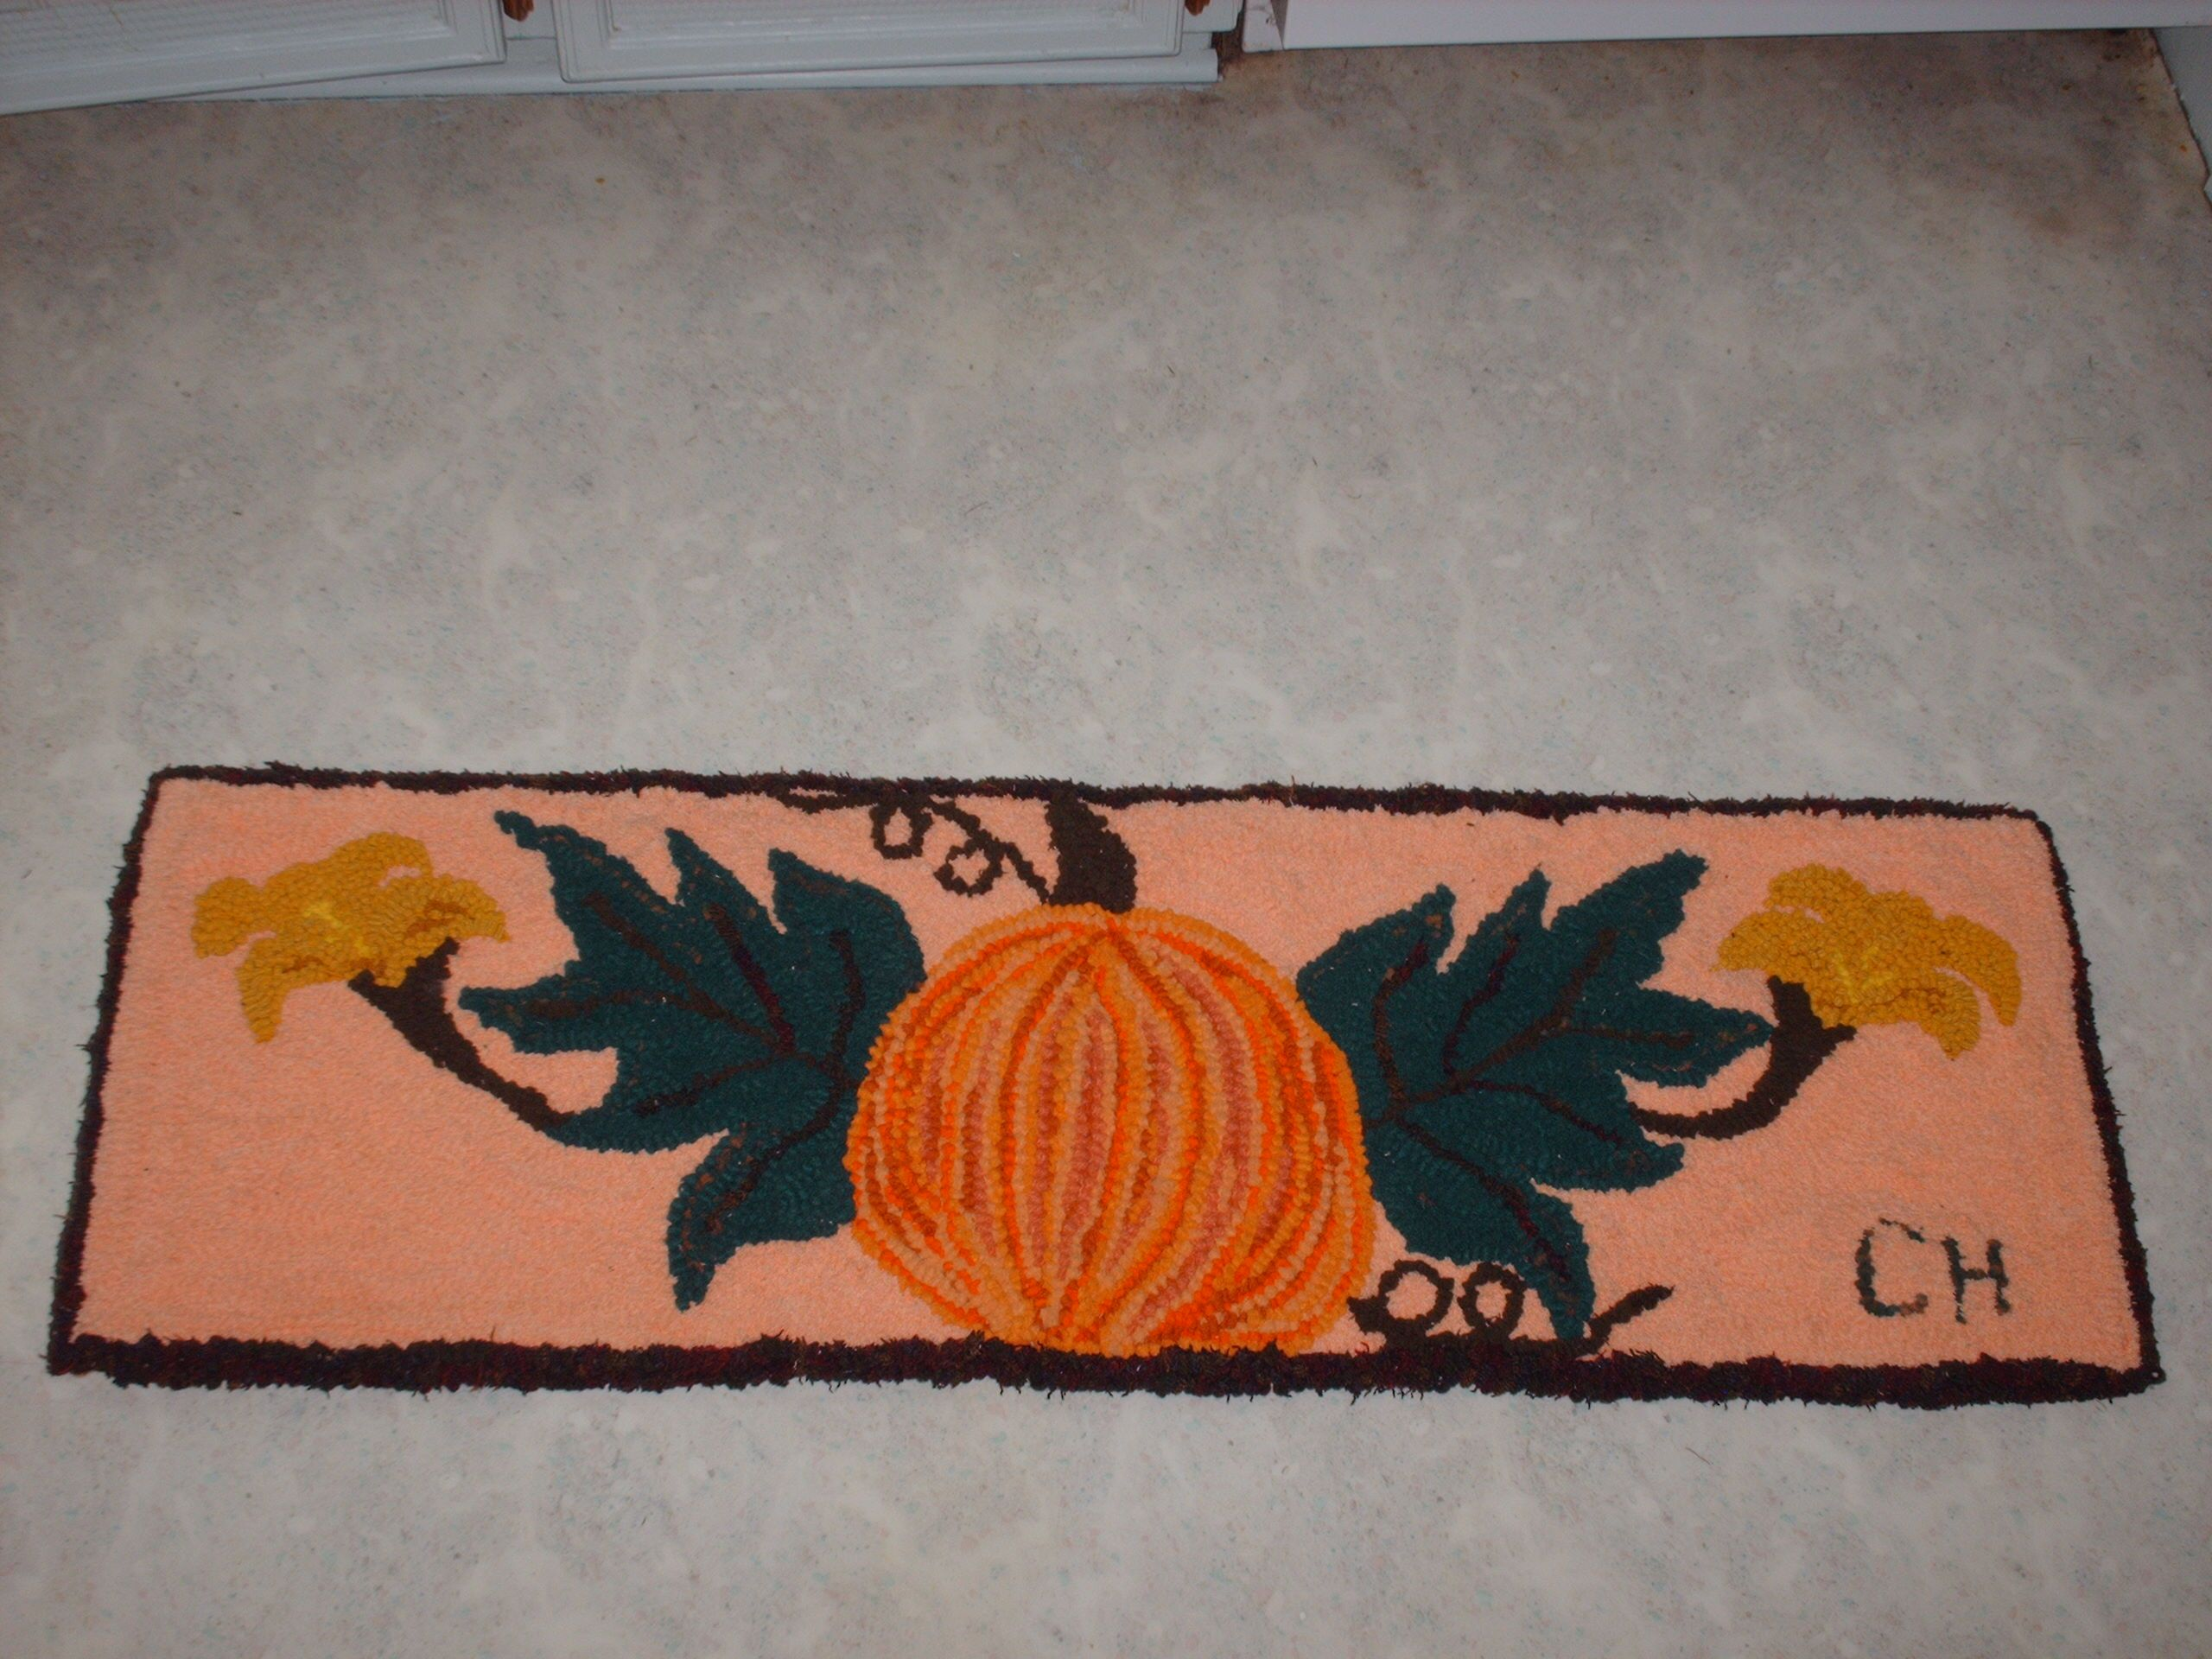 """40""""x13"""" pad for my deacons bench.  The background is terrycloth.  Made by Carmen Hall using Rug Crafters tool Finished October 2015"""